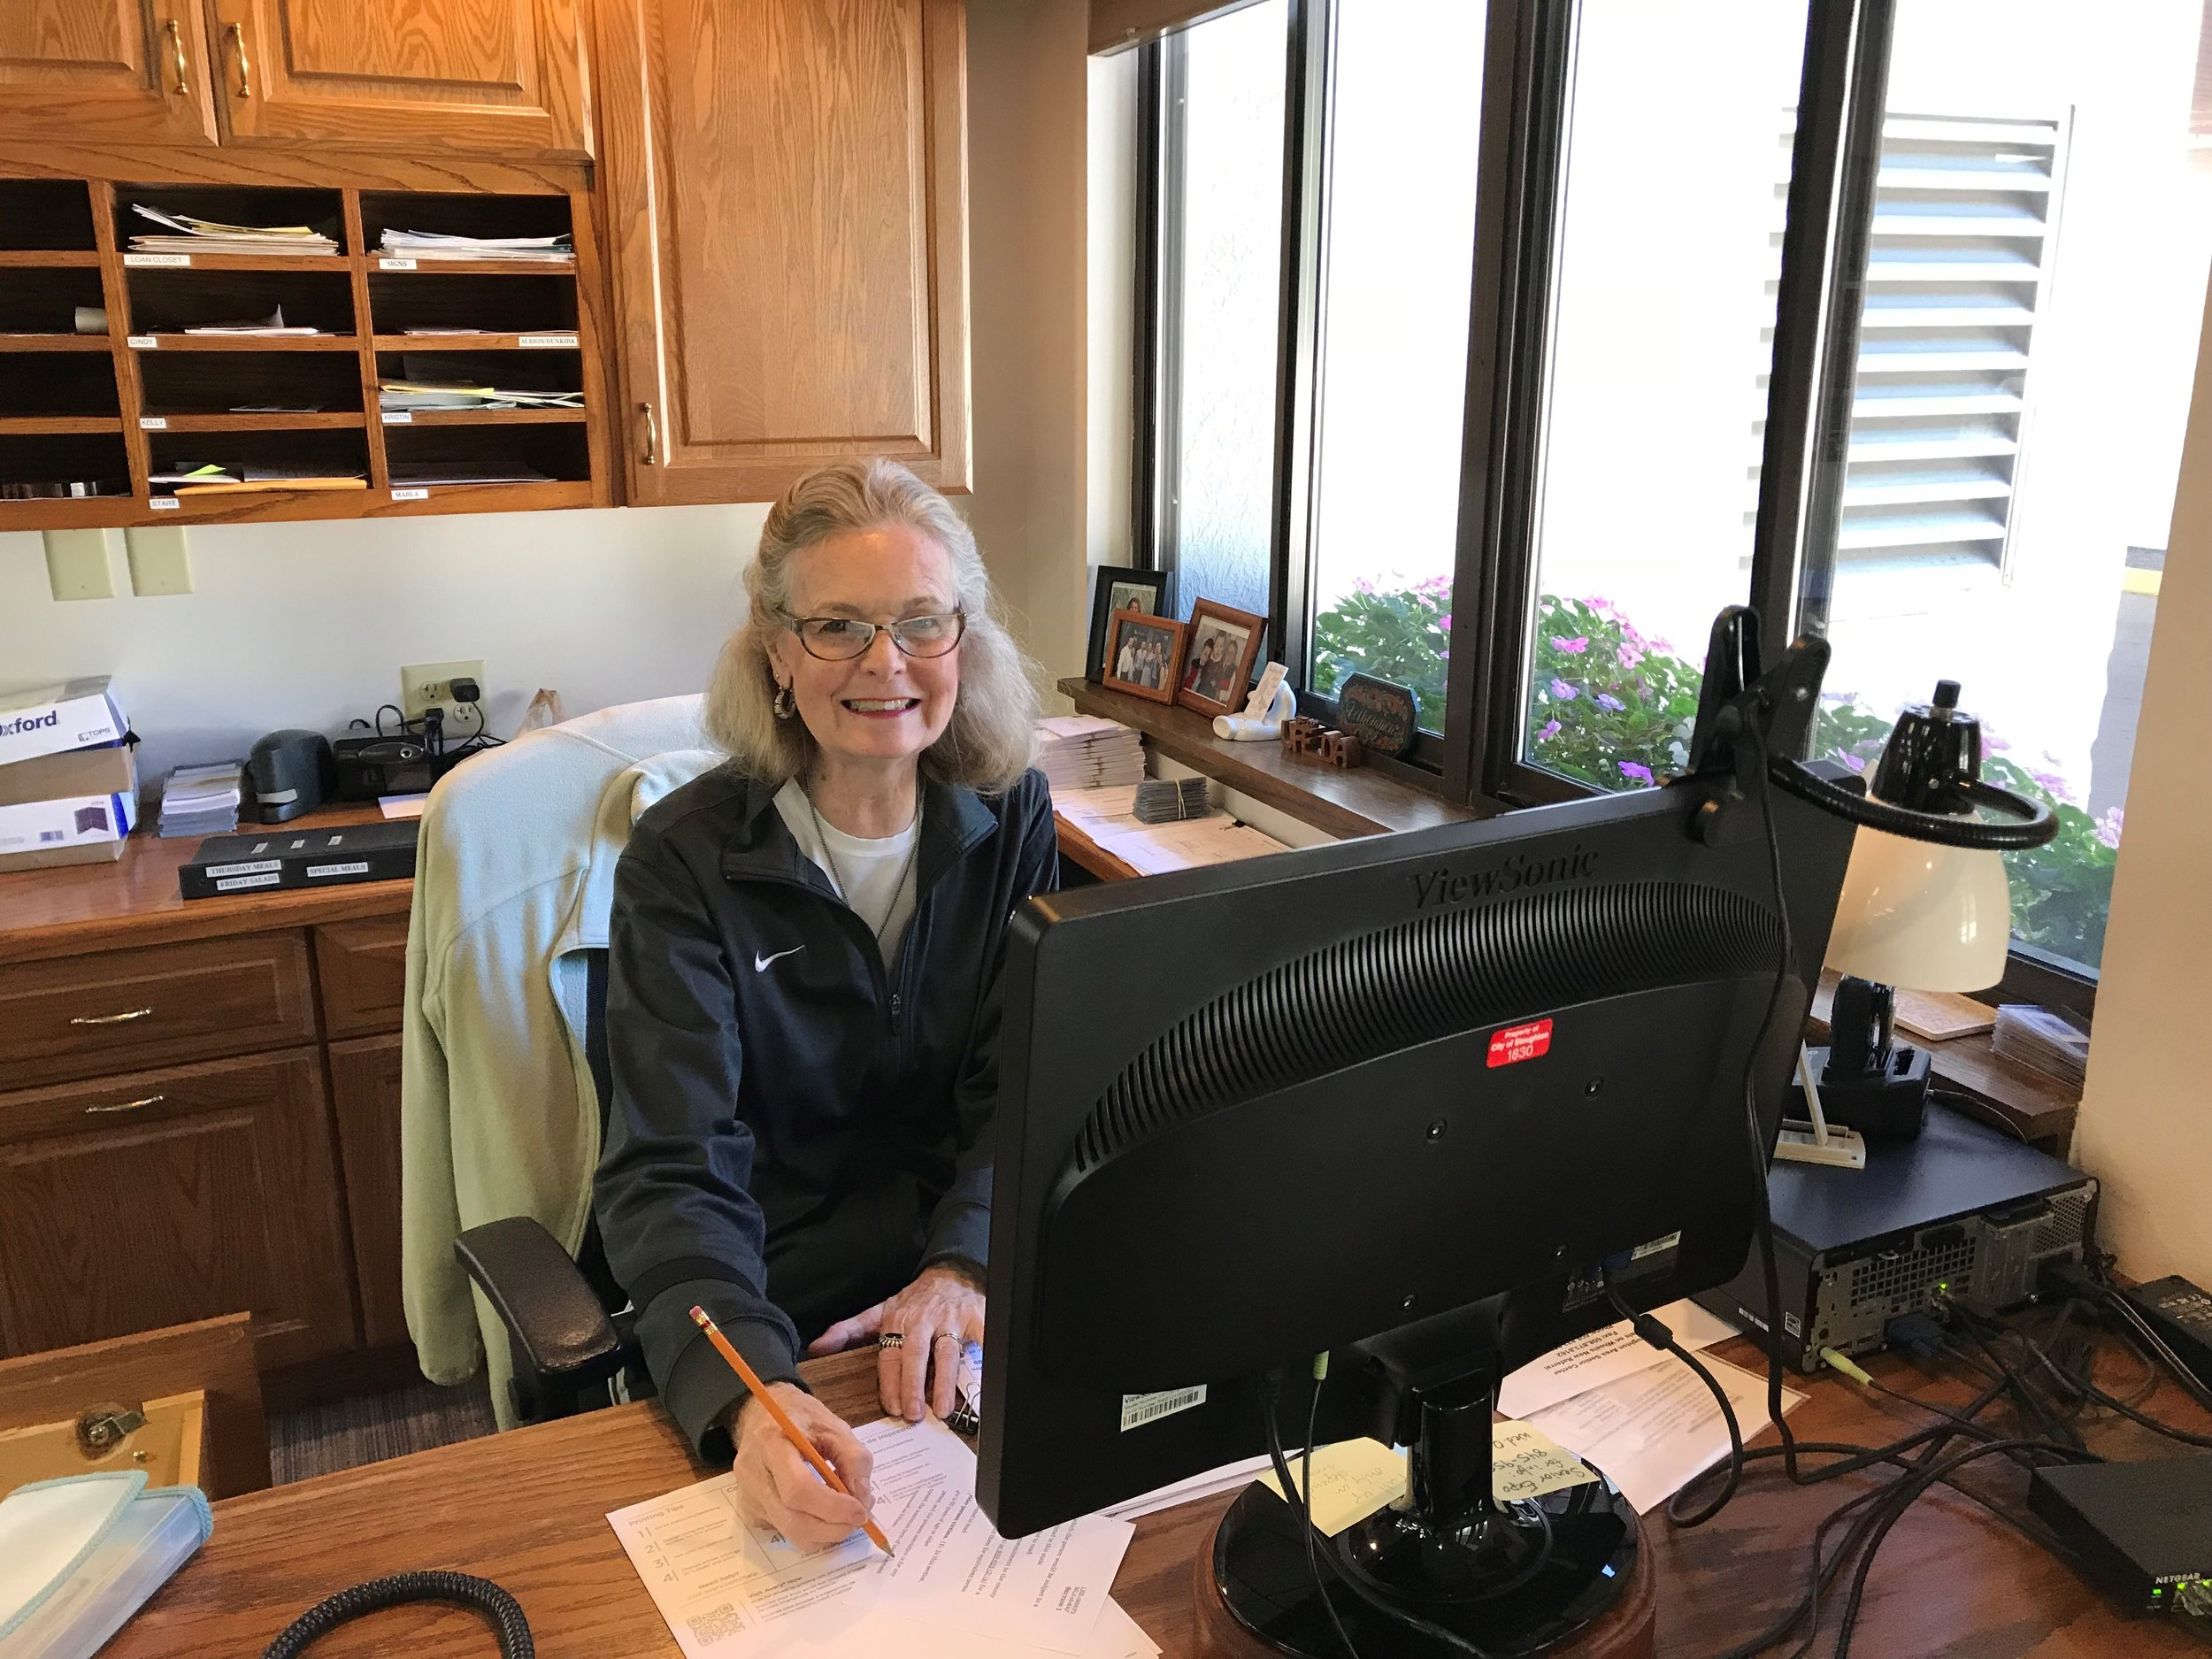 """""""I volunteer at the Senior Center because I believe it provides a very valuable service to seniors in our community. I also enjoy the interaction with other members and volunteers."""" -Rhona"""